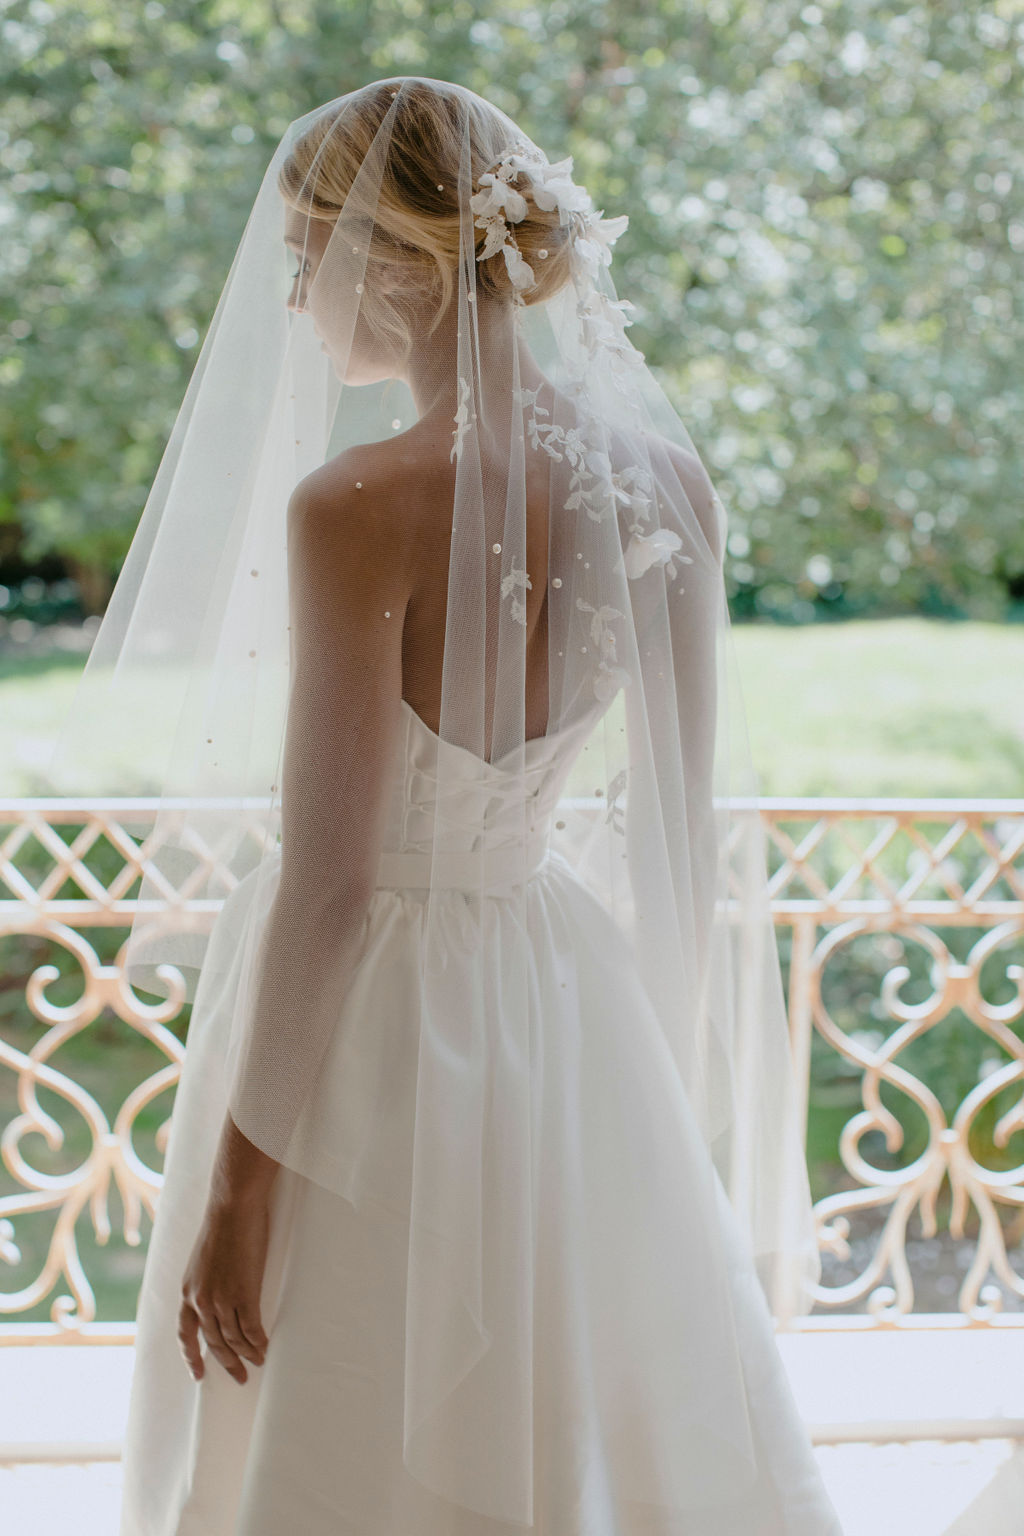 WEEPING CHERRY EMBELLISHED SHORT WEDDING VEIL by TANIA MARAS featured on LOVE FIND CO.